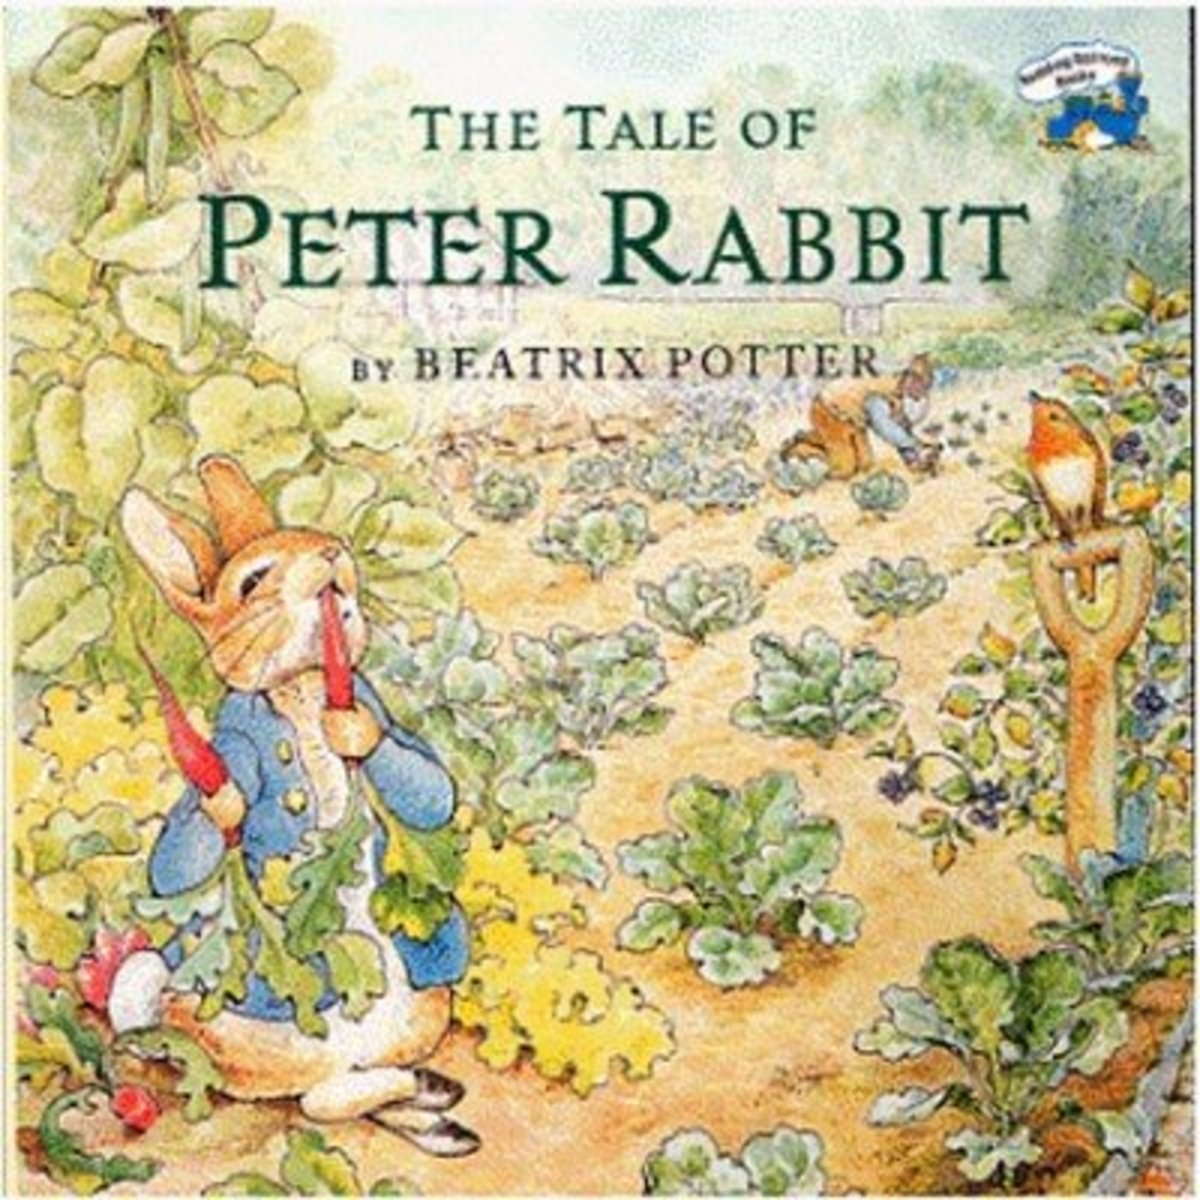 Image result for author beatrix potter in 1943